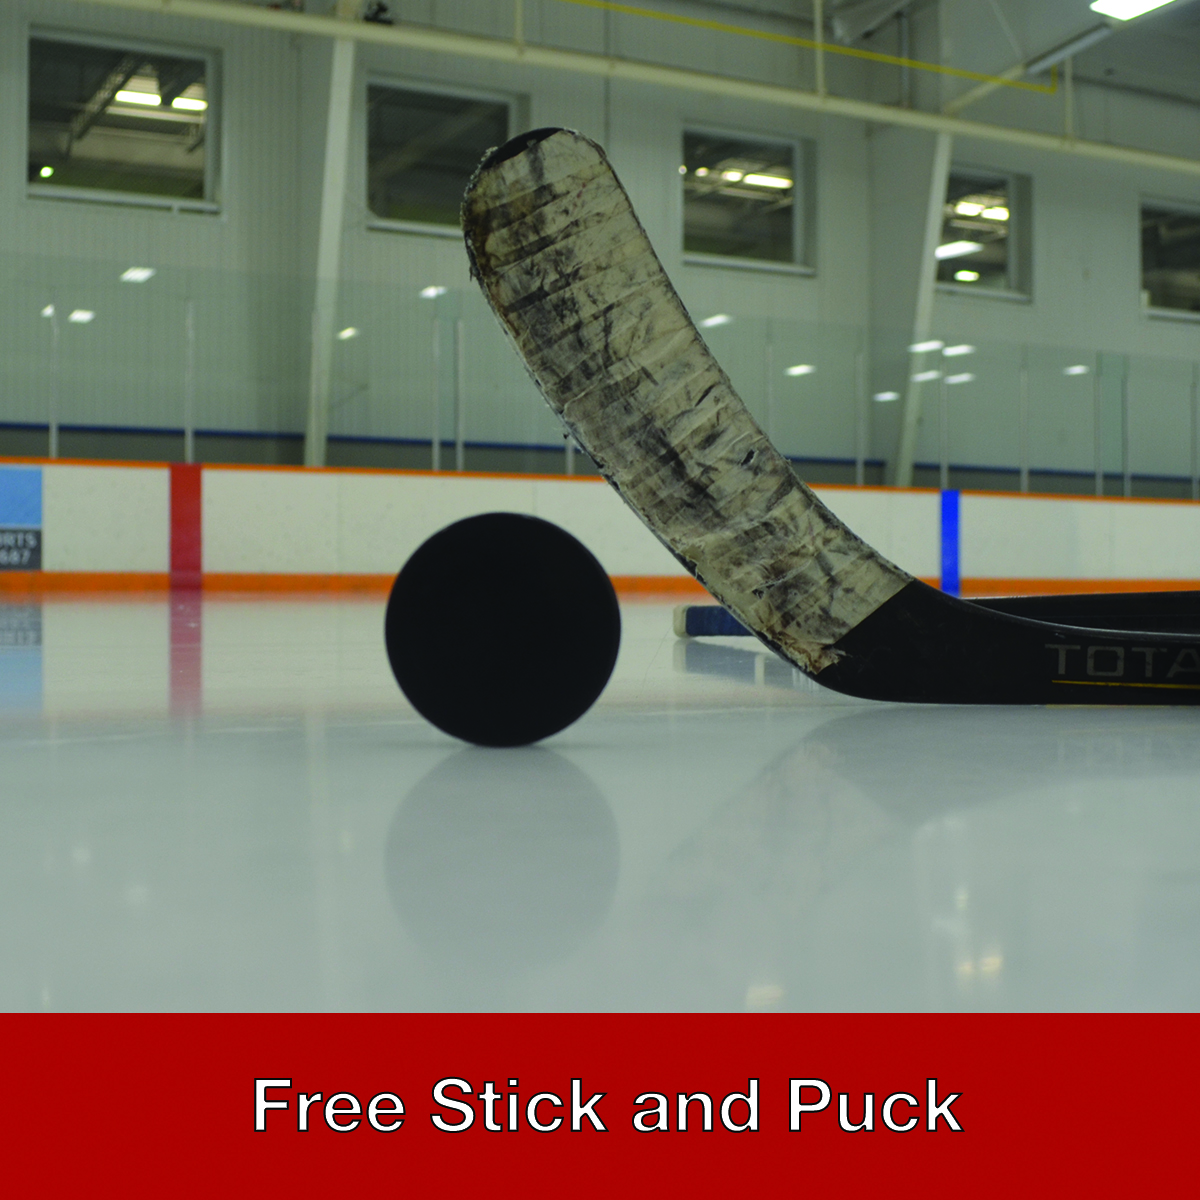 Free Stick and Puck